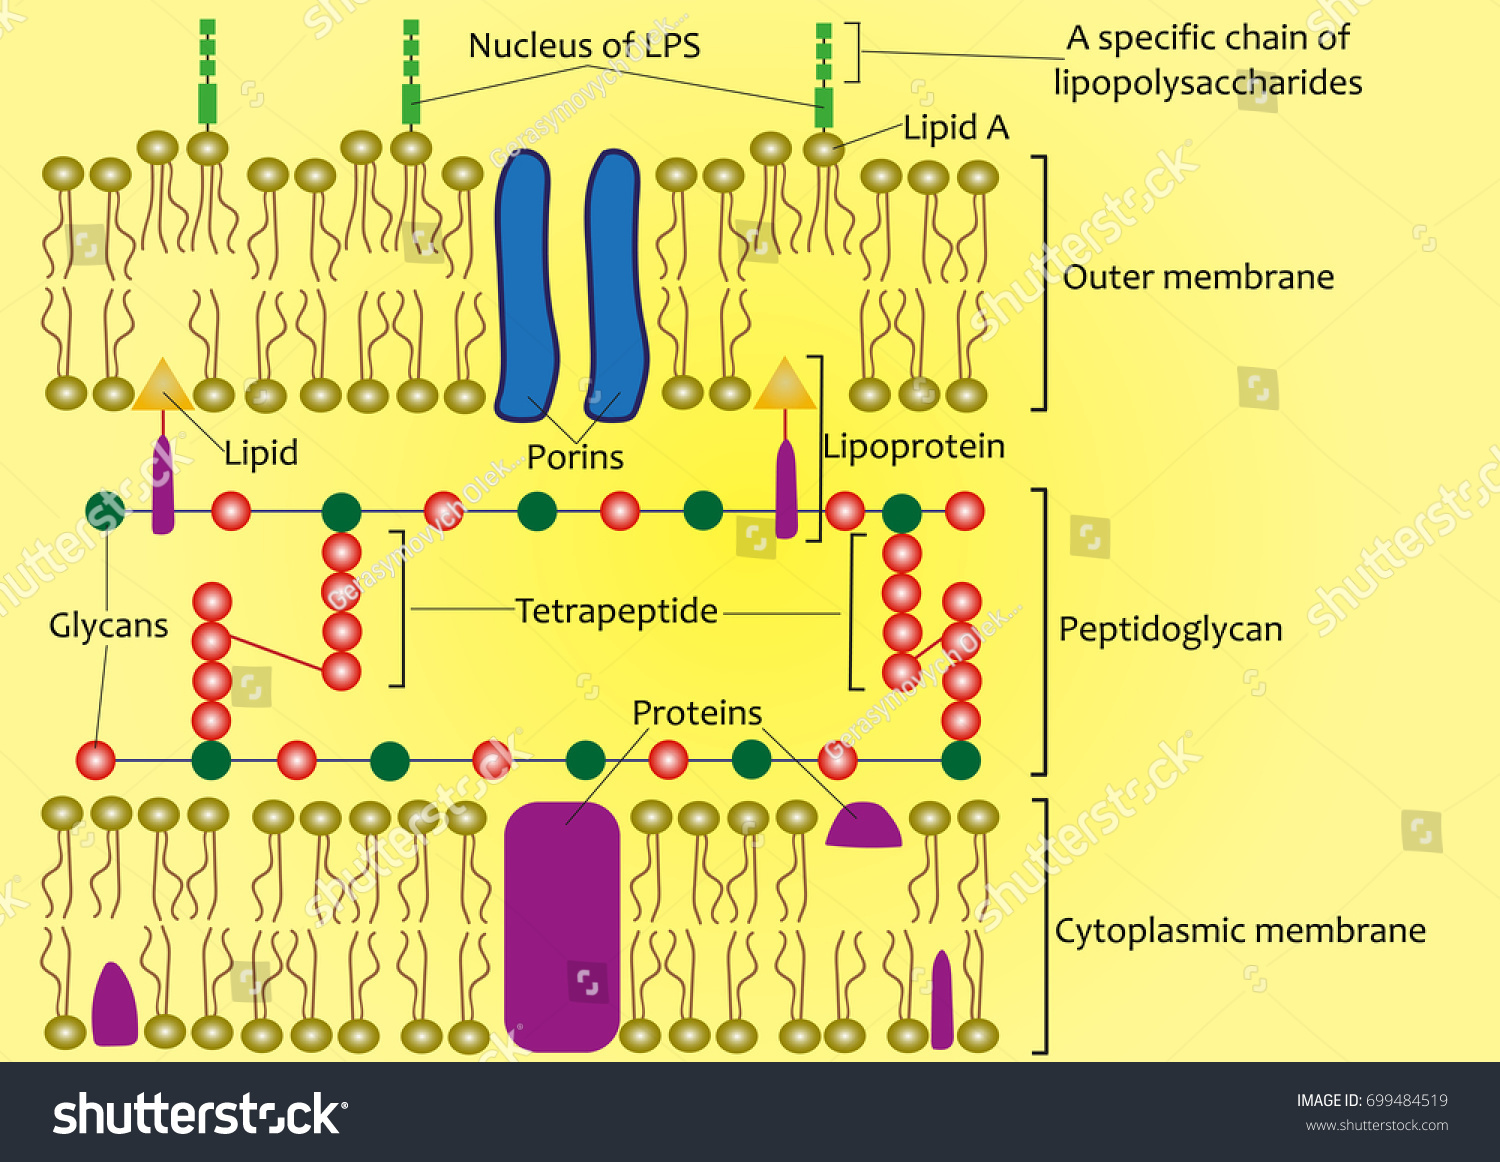 Structure cell wall gramnegative bacteria scheme stock vector structure of the cell wall of gram negative bacteria scheme ccuart Image collections